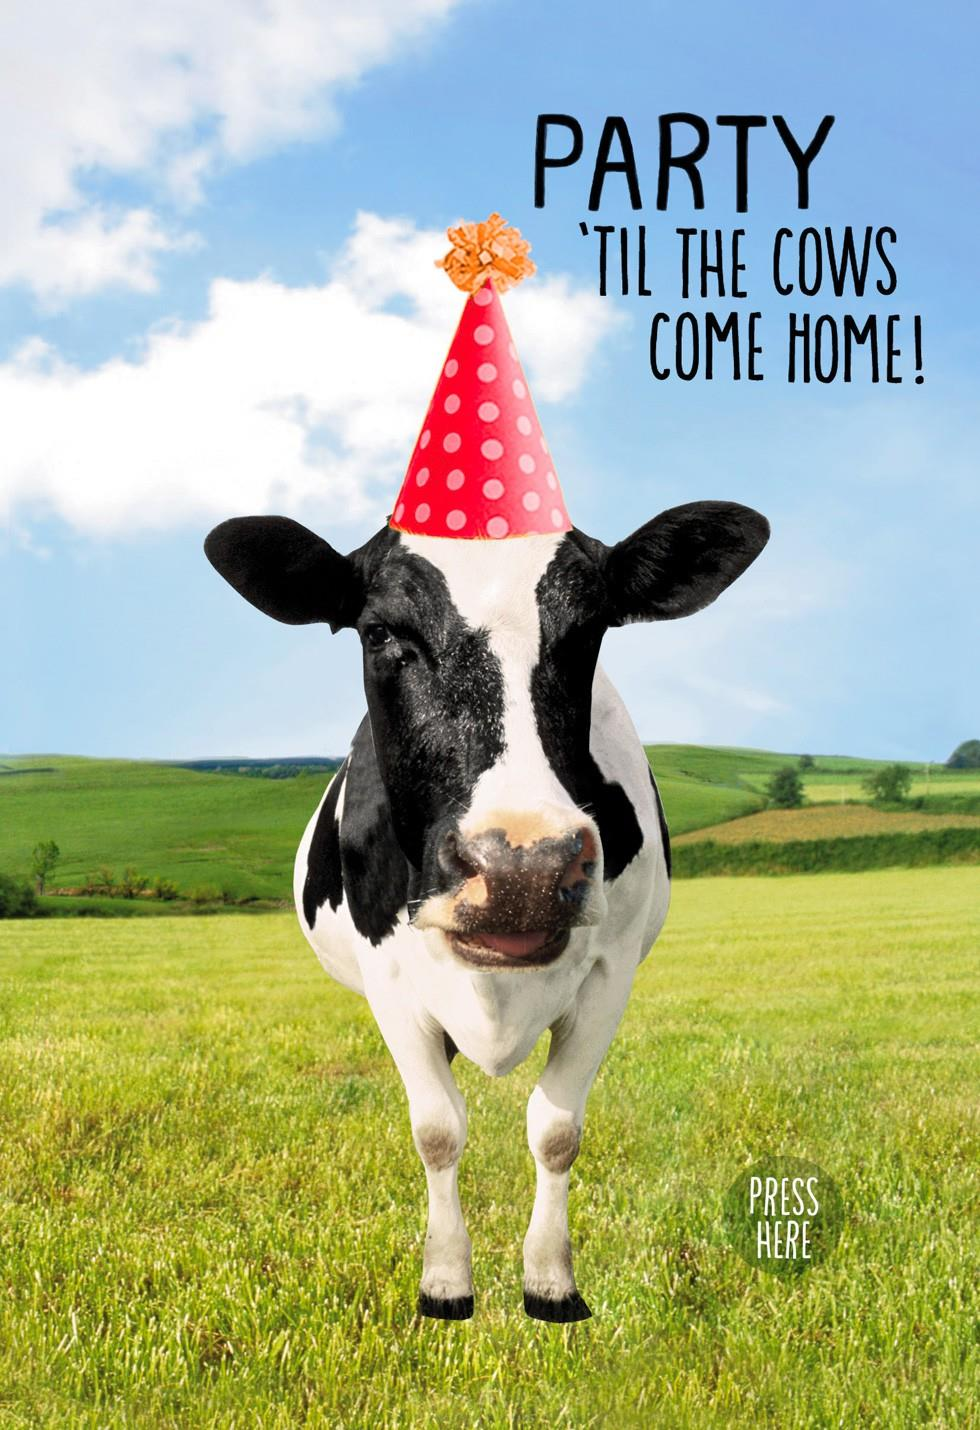 Dancing Cow Musical Birthday Card With Motion